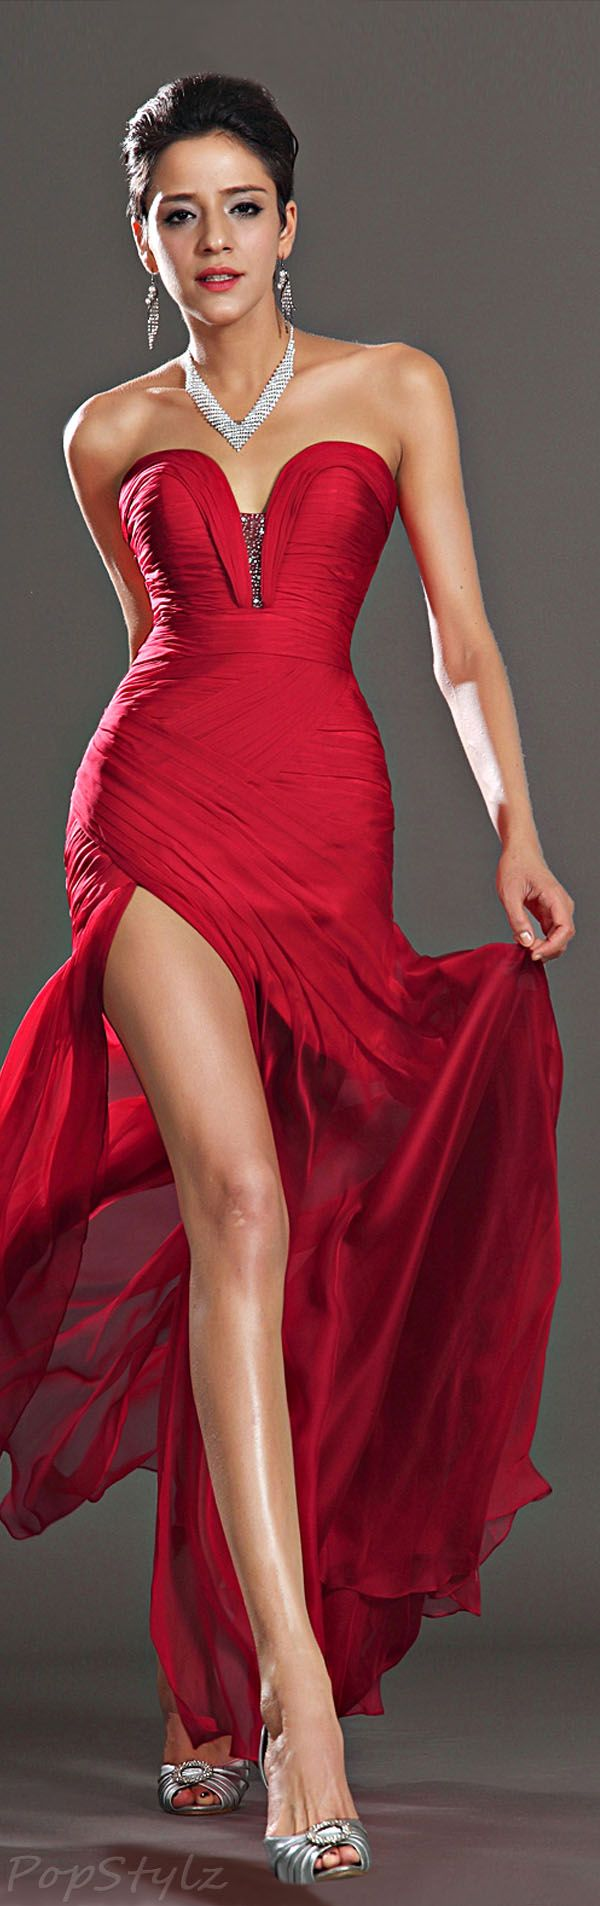 529 best Woman in Red images on Pinterest | Evening gowns, Formal ...